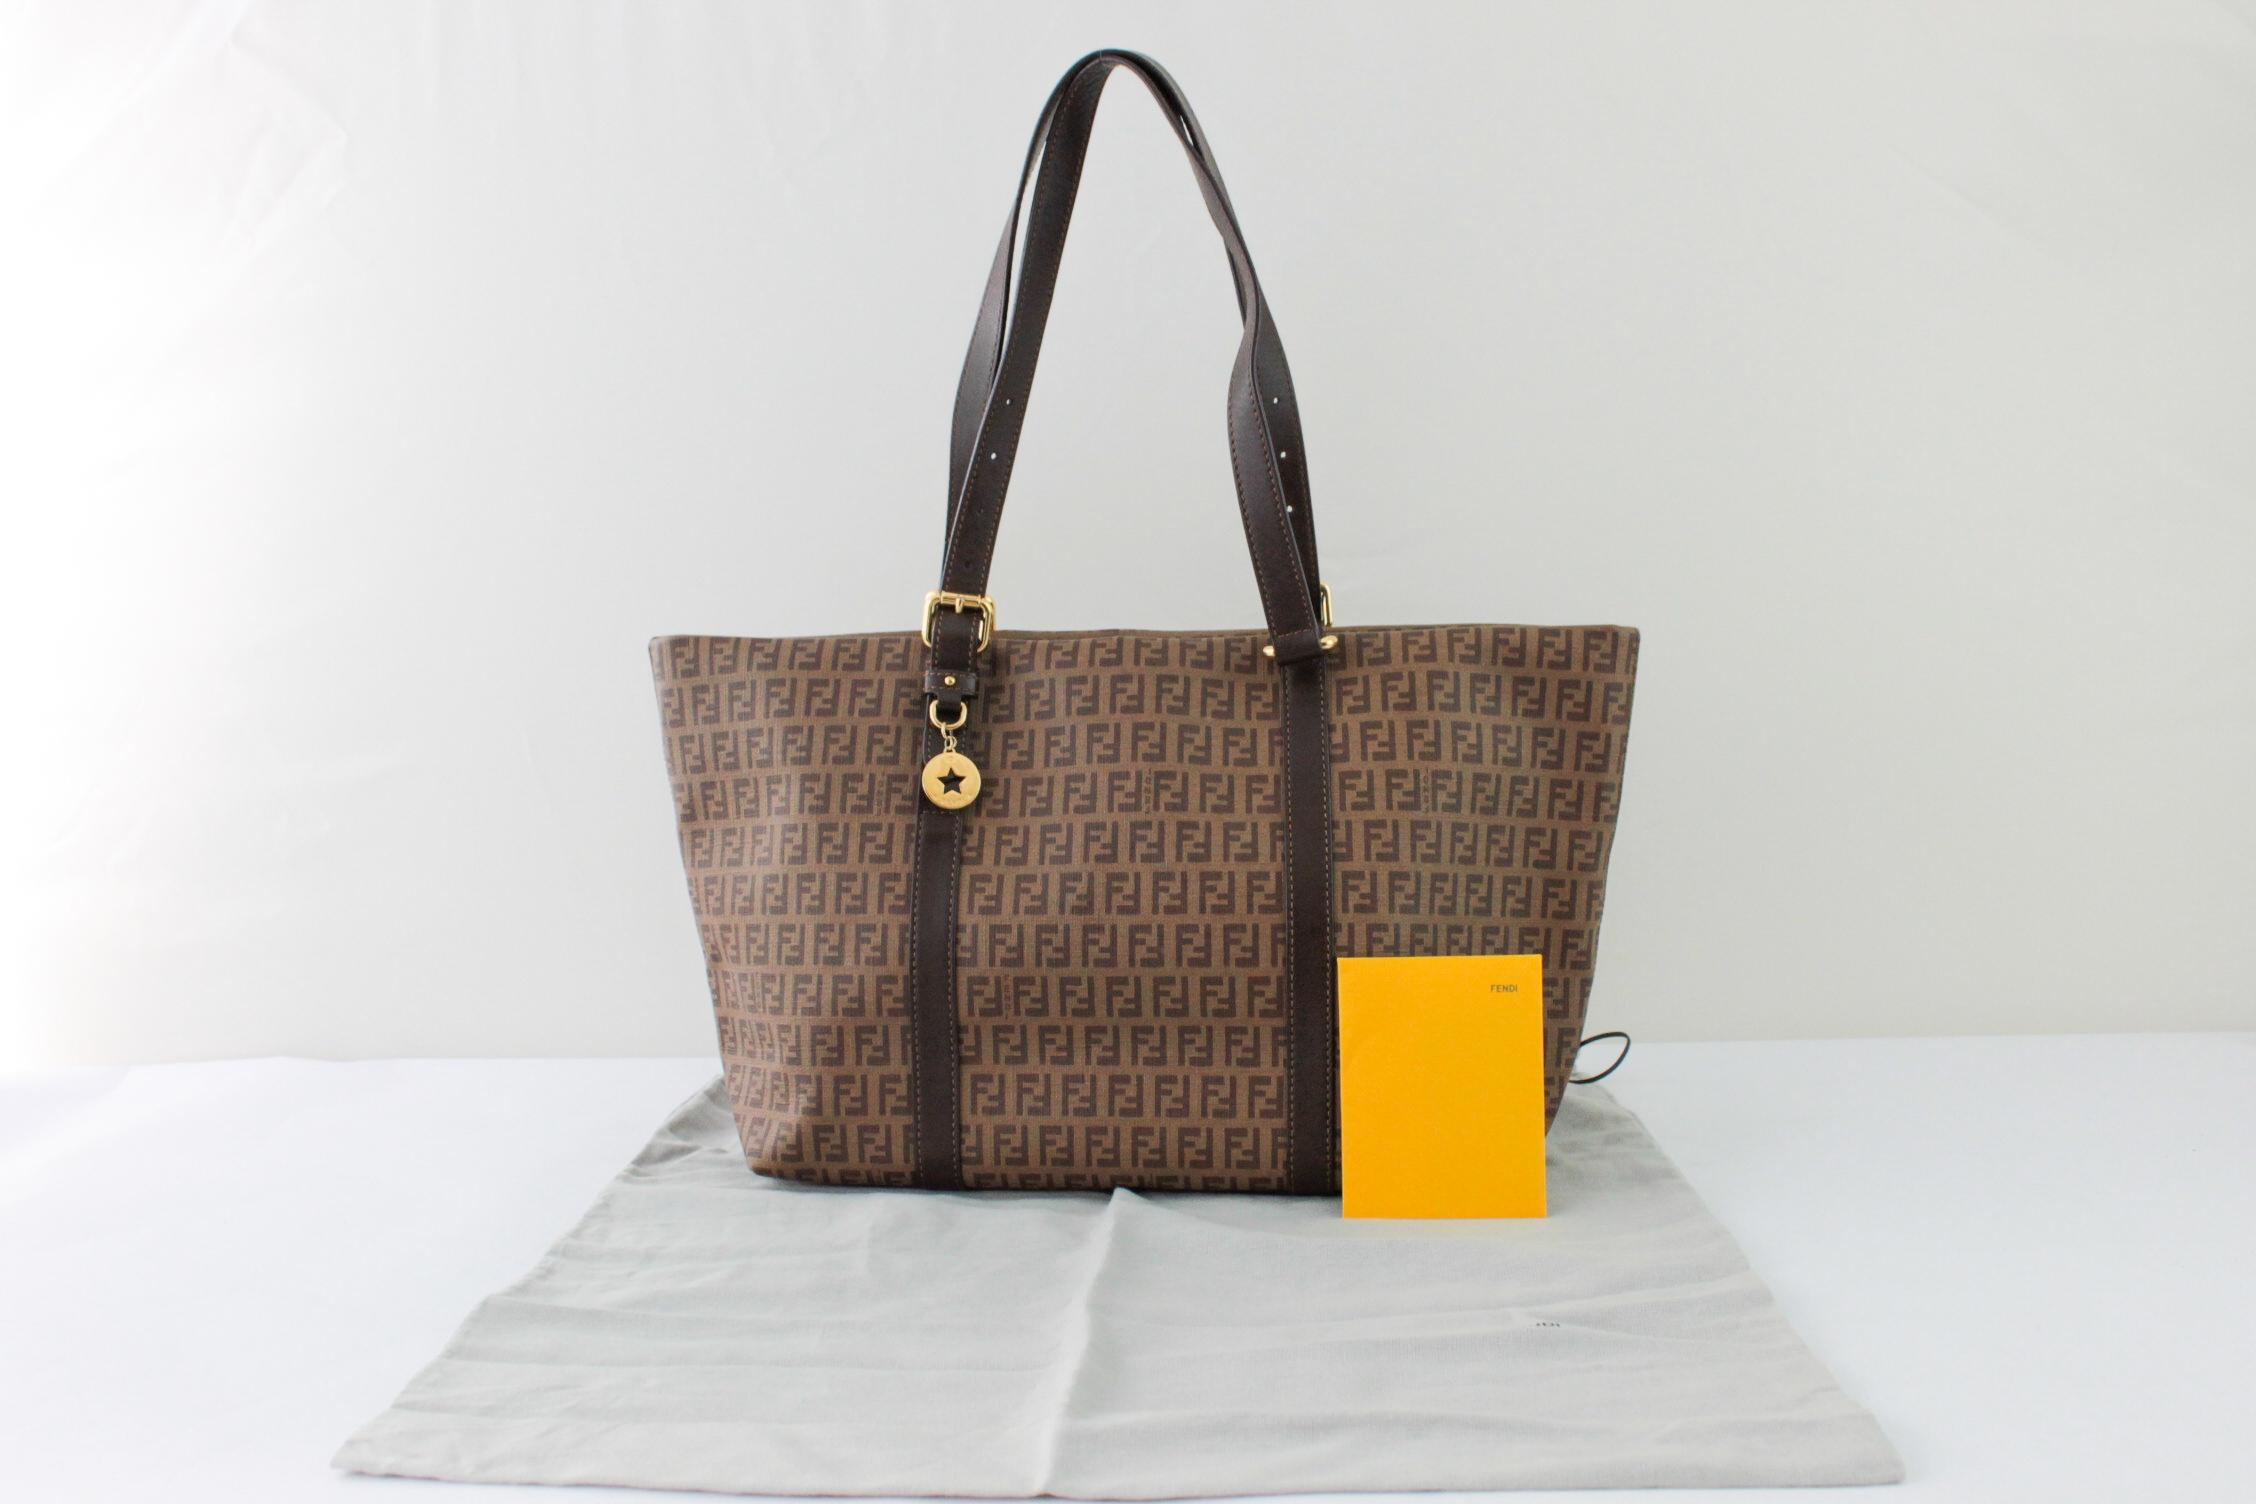 652873e9d3 ... wholesale fendi 9065 ff monogram zucca brown neverfull tote shoulder  bag tradesy 07ed3 2ac74 ...